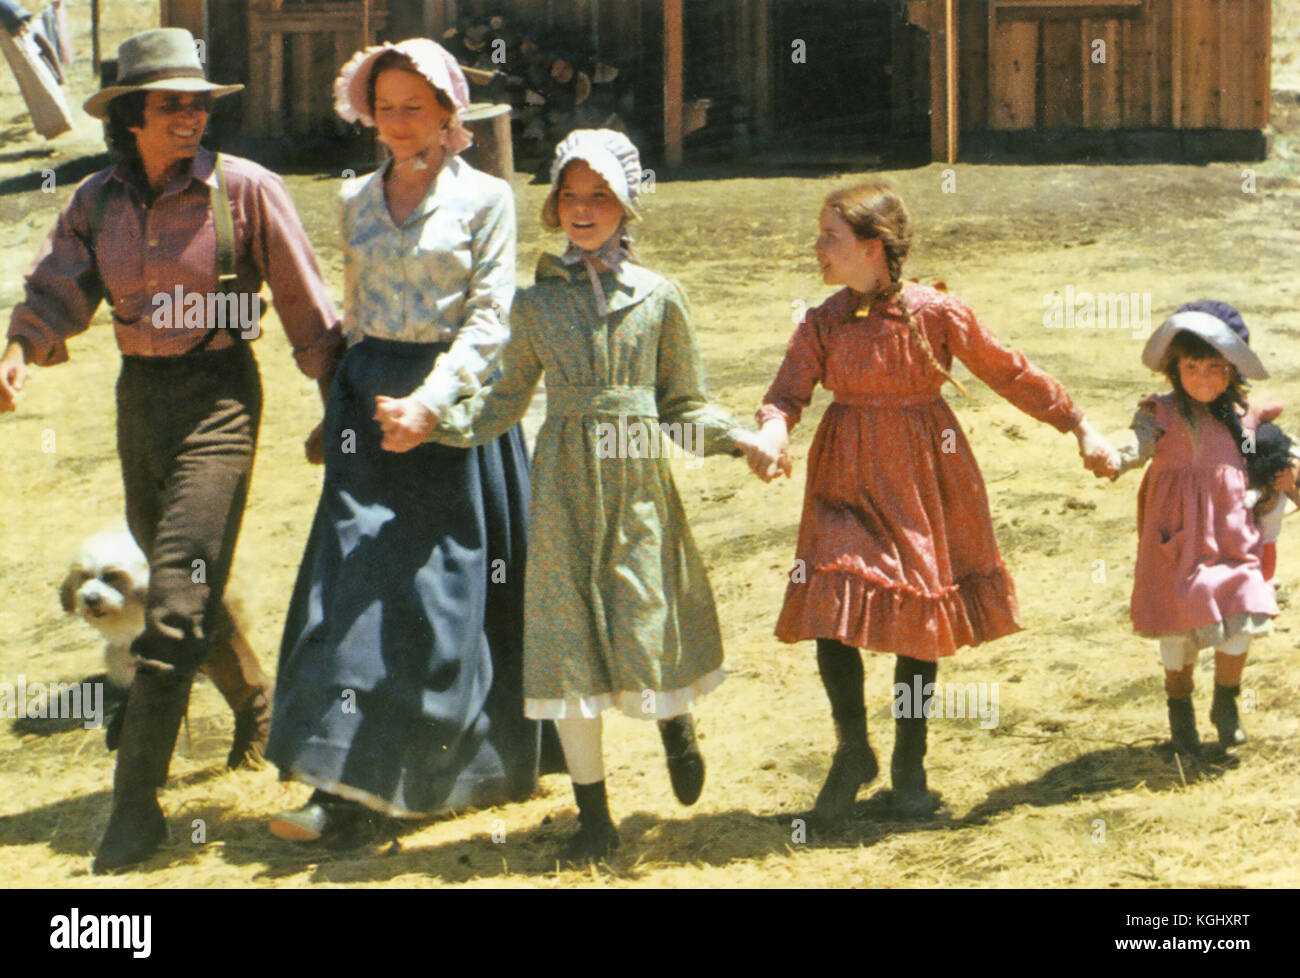 LITTLE HOUSE ON THE PRAIRIE NBC Western TV series with from left: Michael Landon, Karen Grassie, Melissa Sue Anderson, - Stock Image